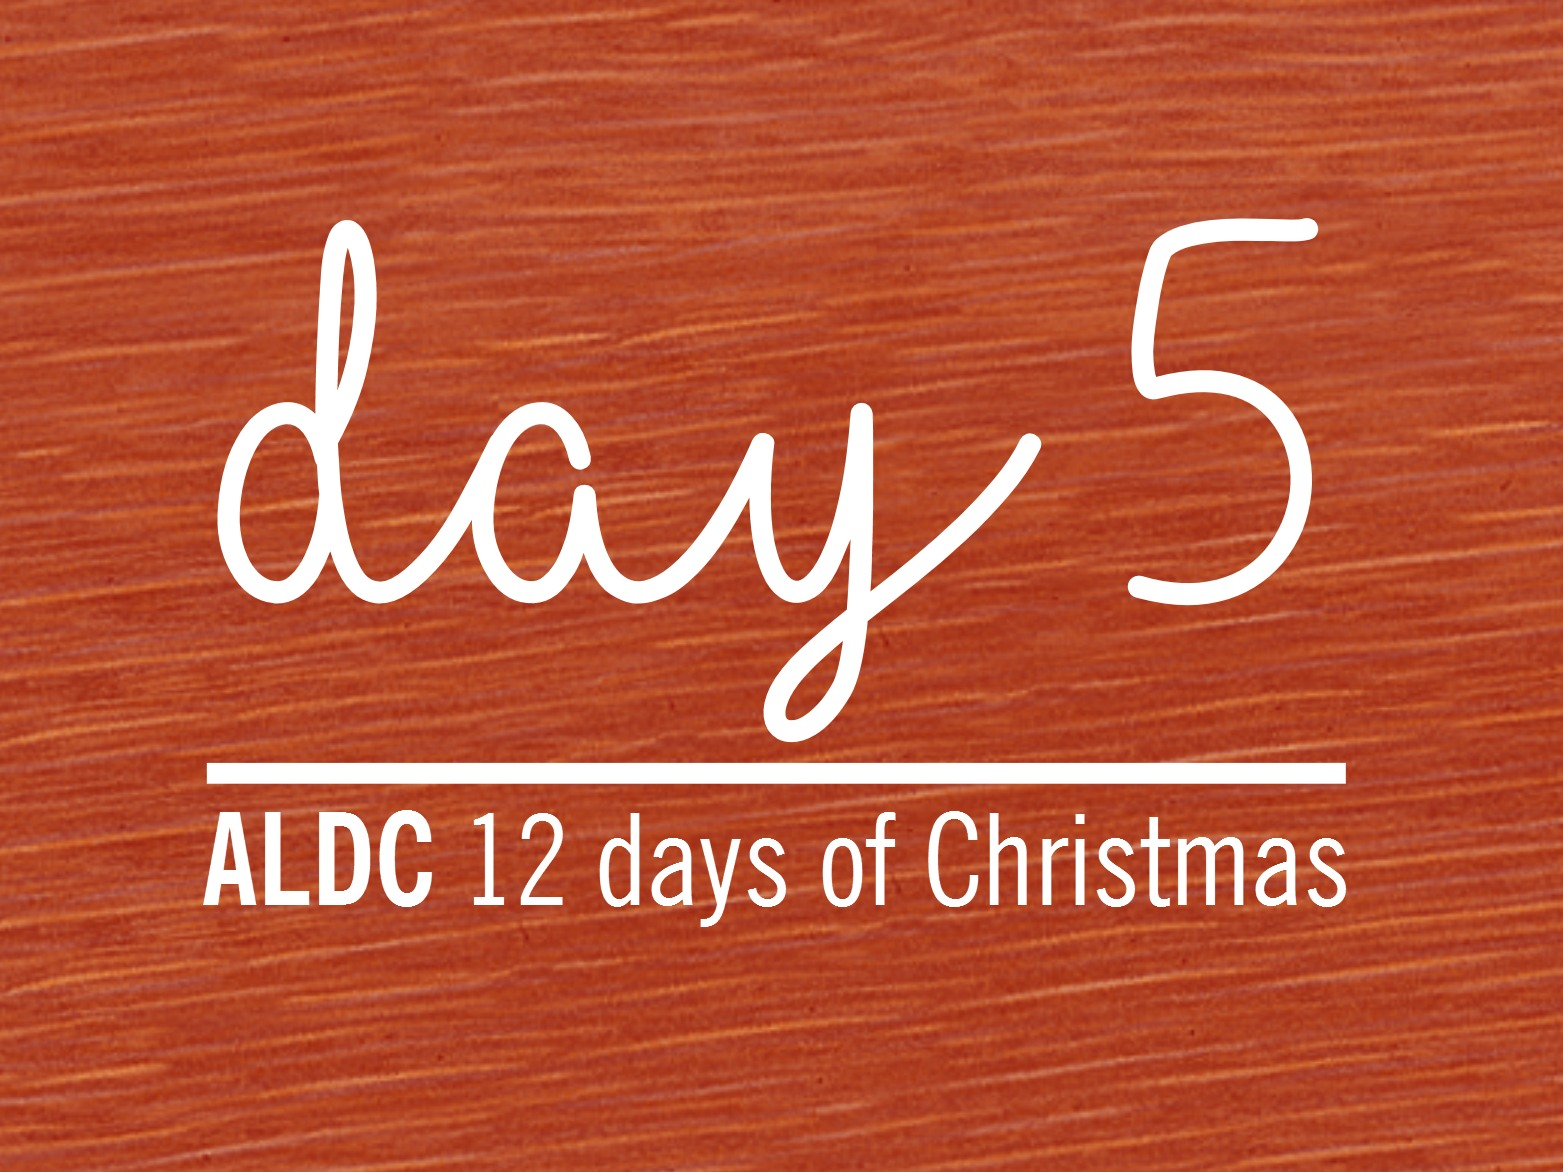 On the fifth day of Christmas, ALDC gave to me…